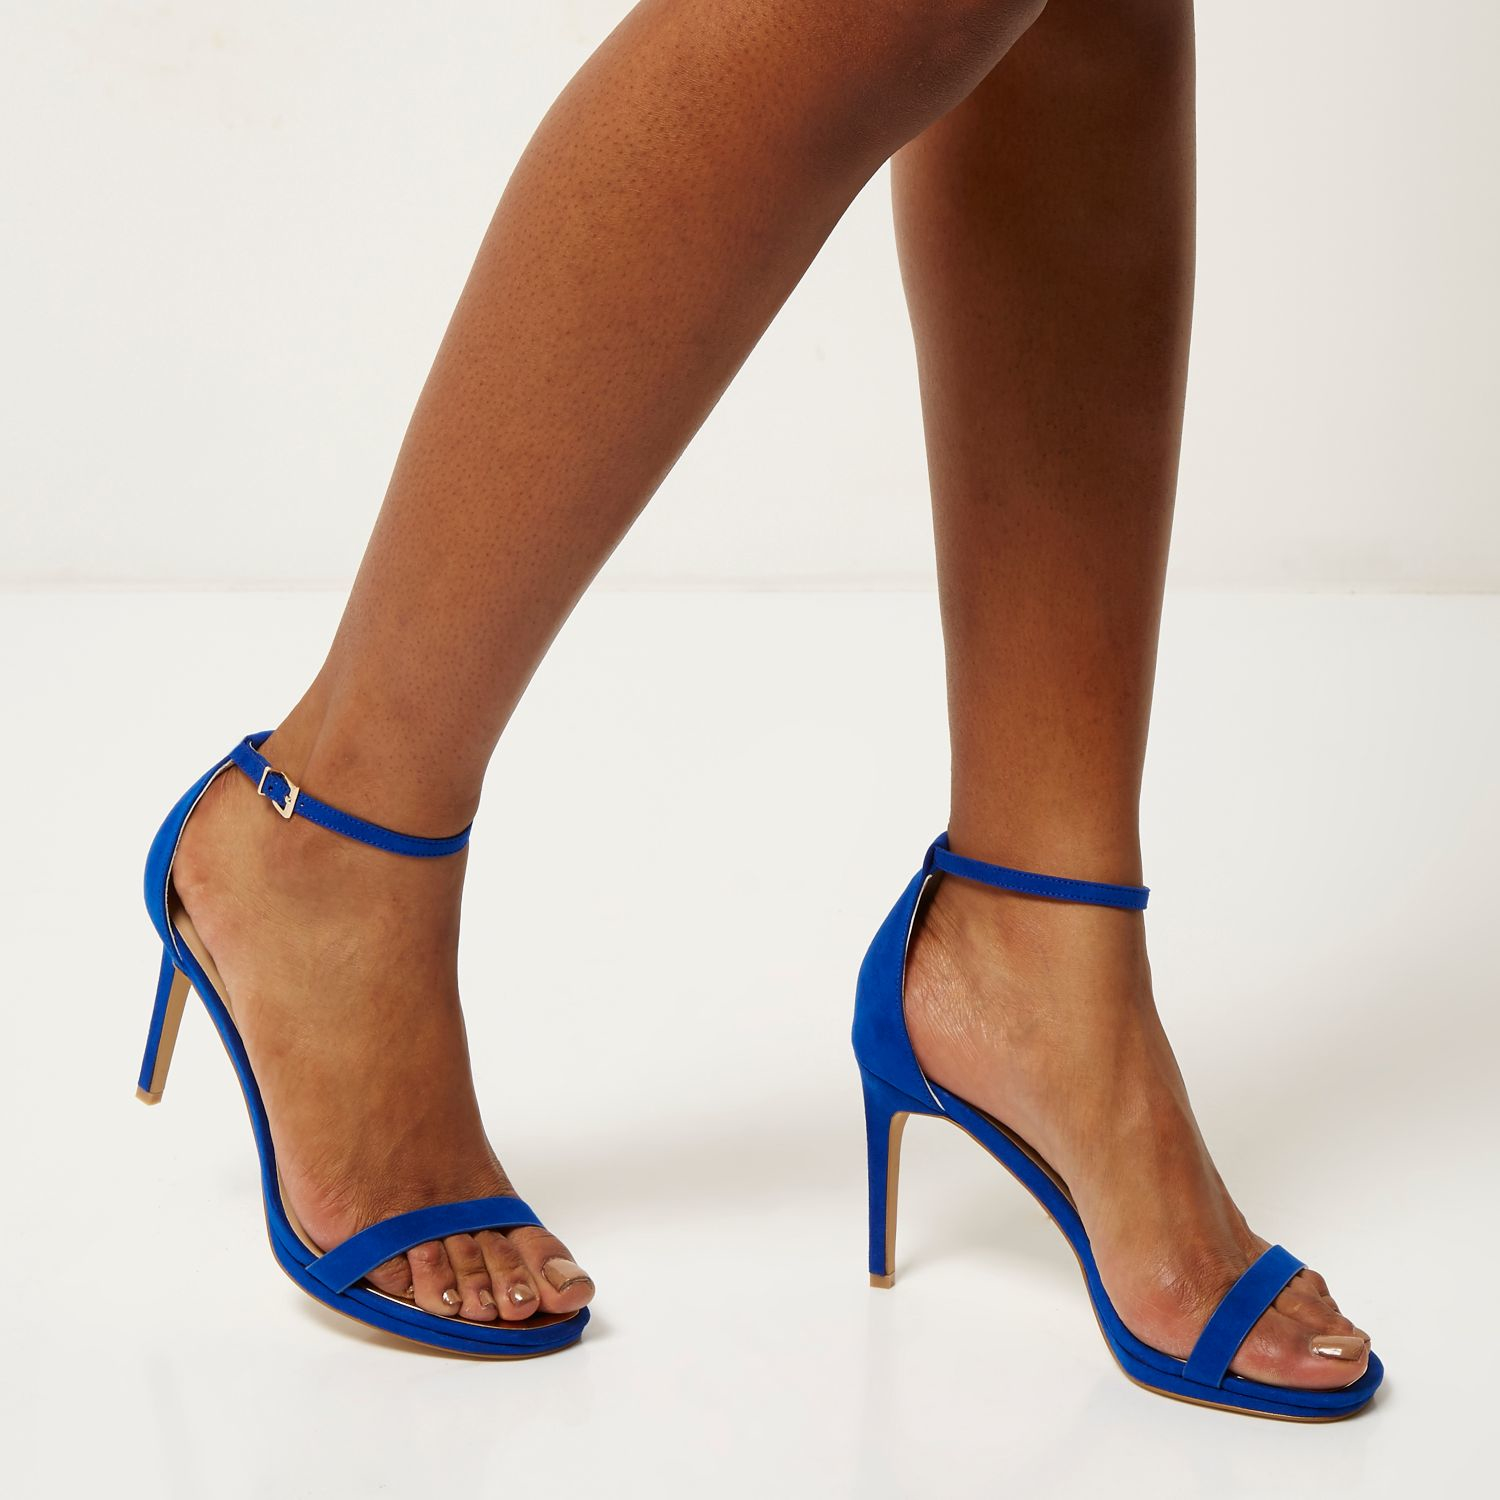 Blue There Heels Barely Women's Sandal vOmN0nwy8